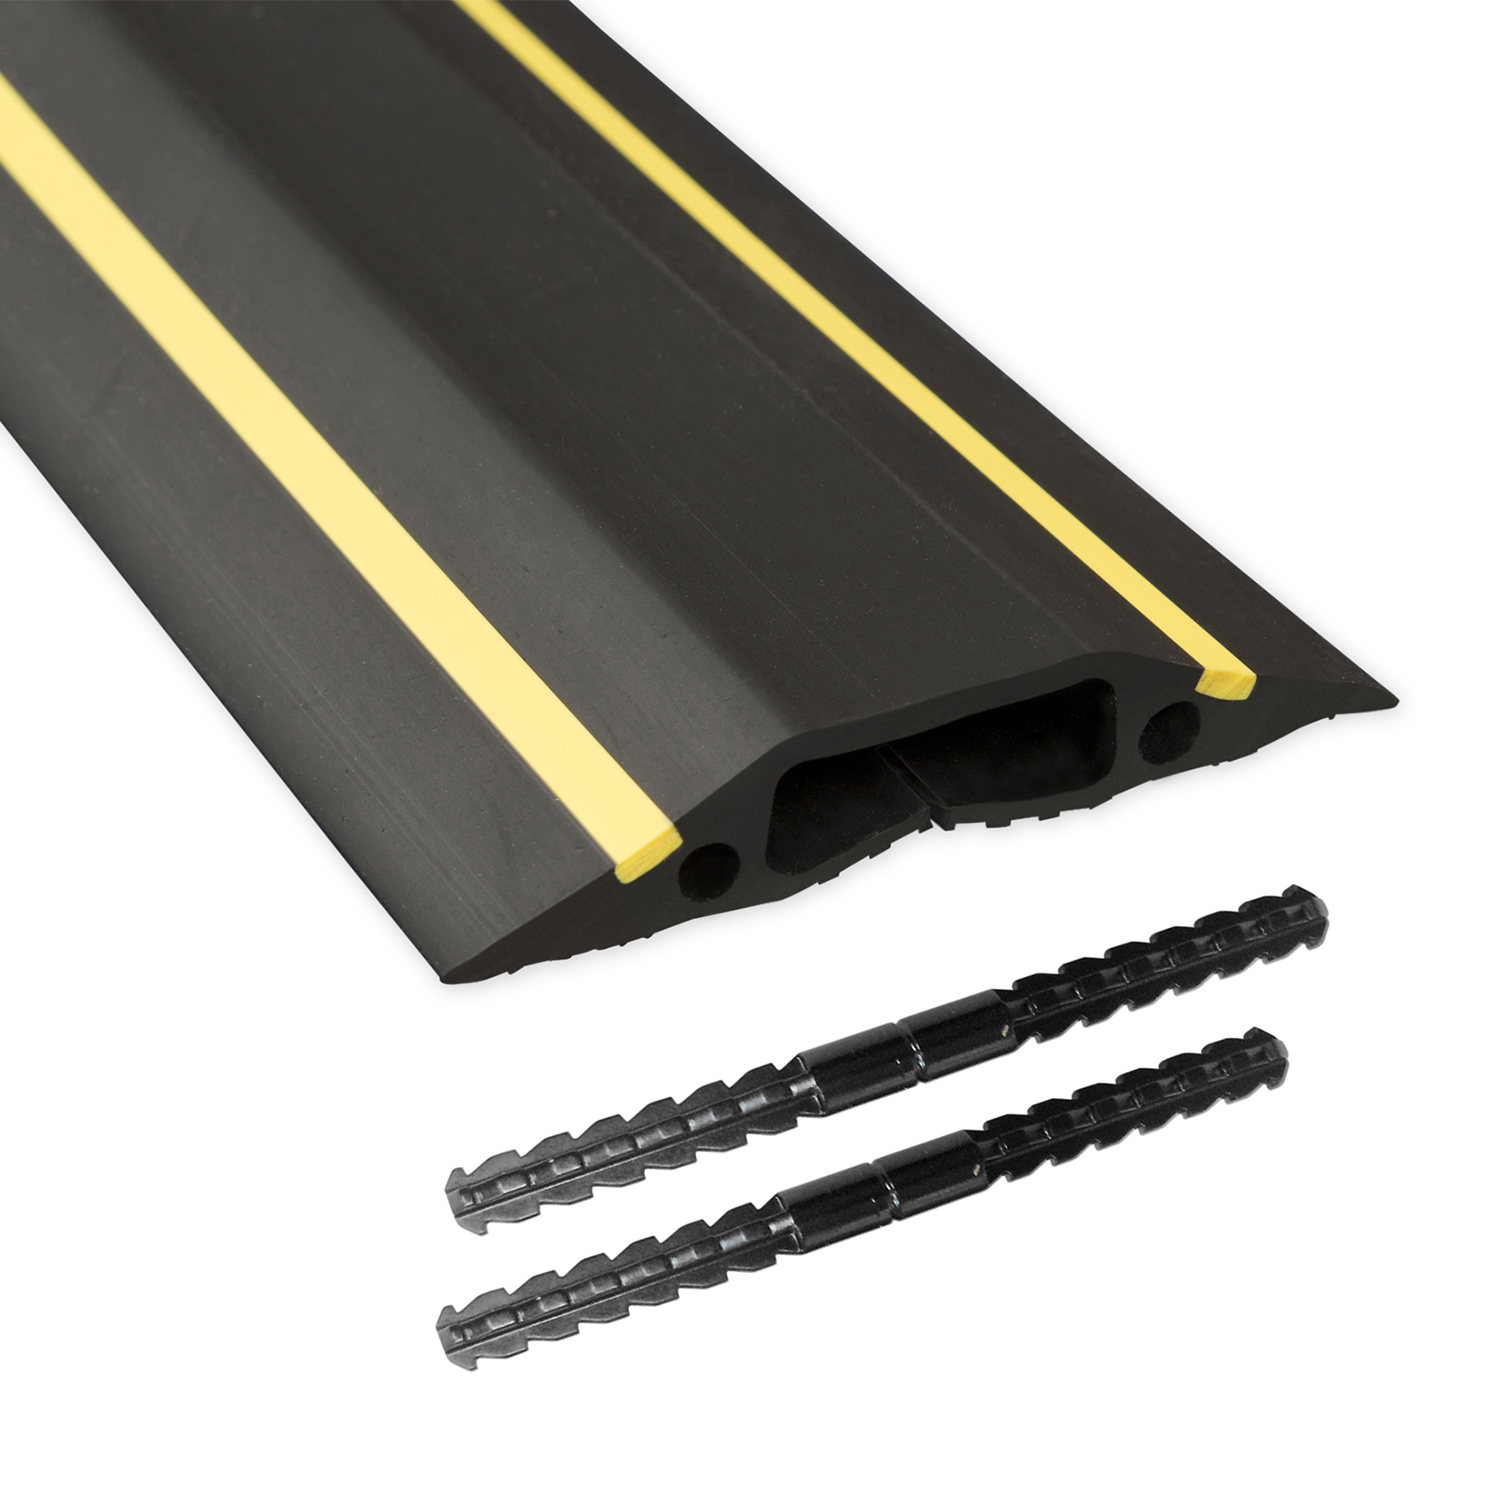 Cable accessories D-Line Floor Cable Cover 83mm x 1.8m Black and Yellow Ref FC83H